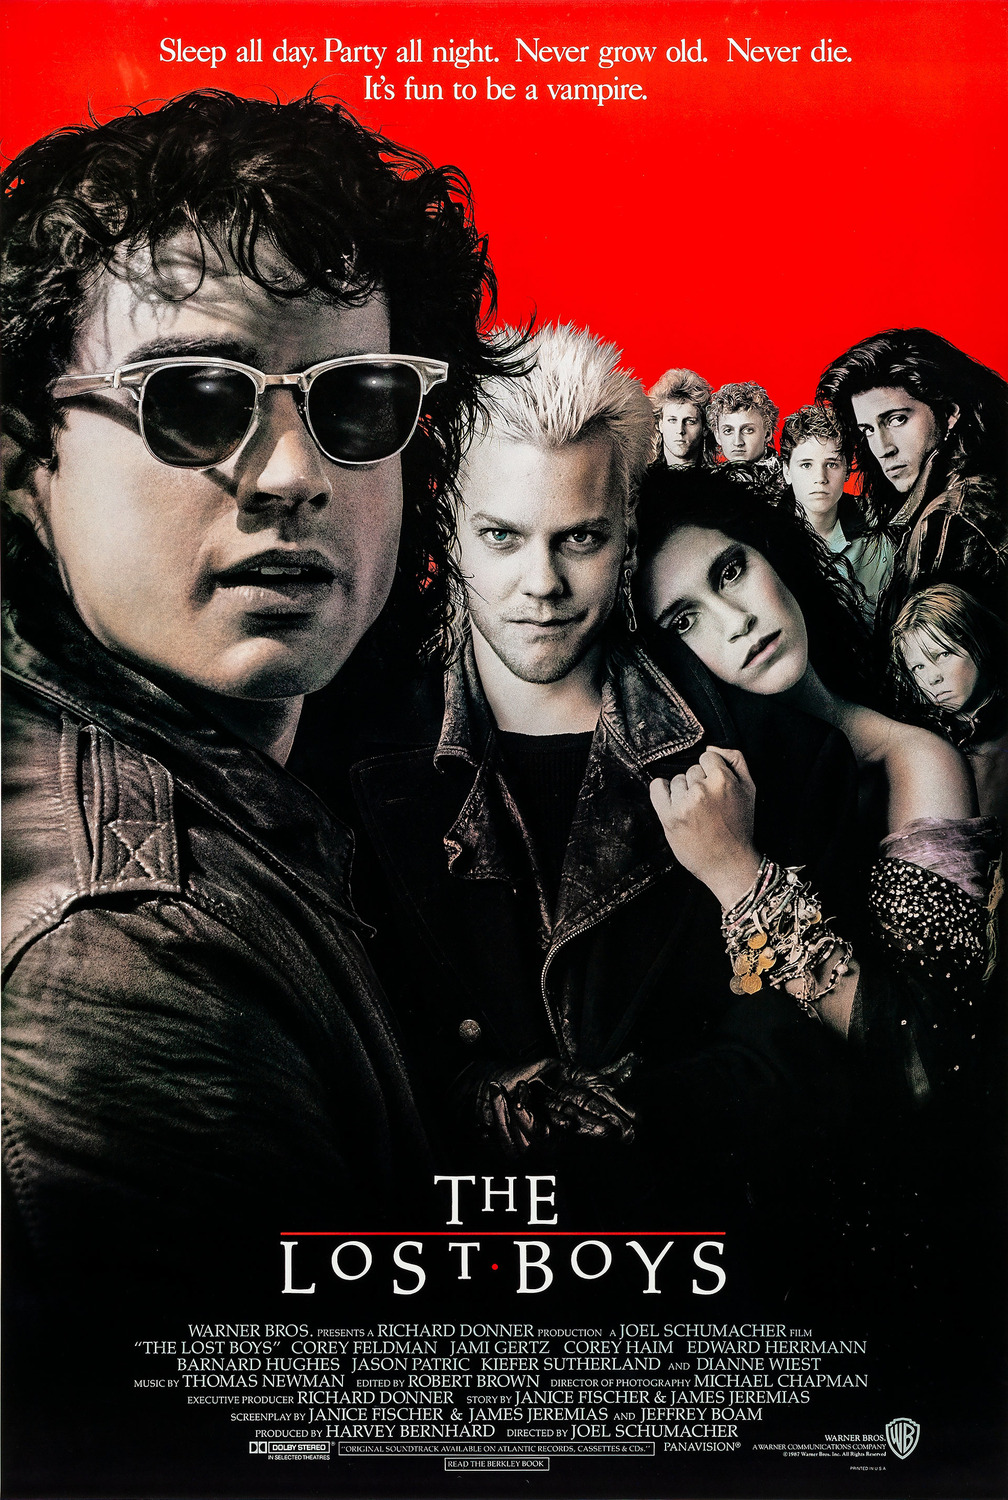 https://i1.wp.com/www.impawards.com/1987/posters/lost_boys_xlg.jpg